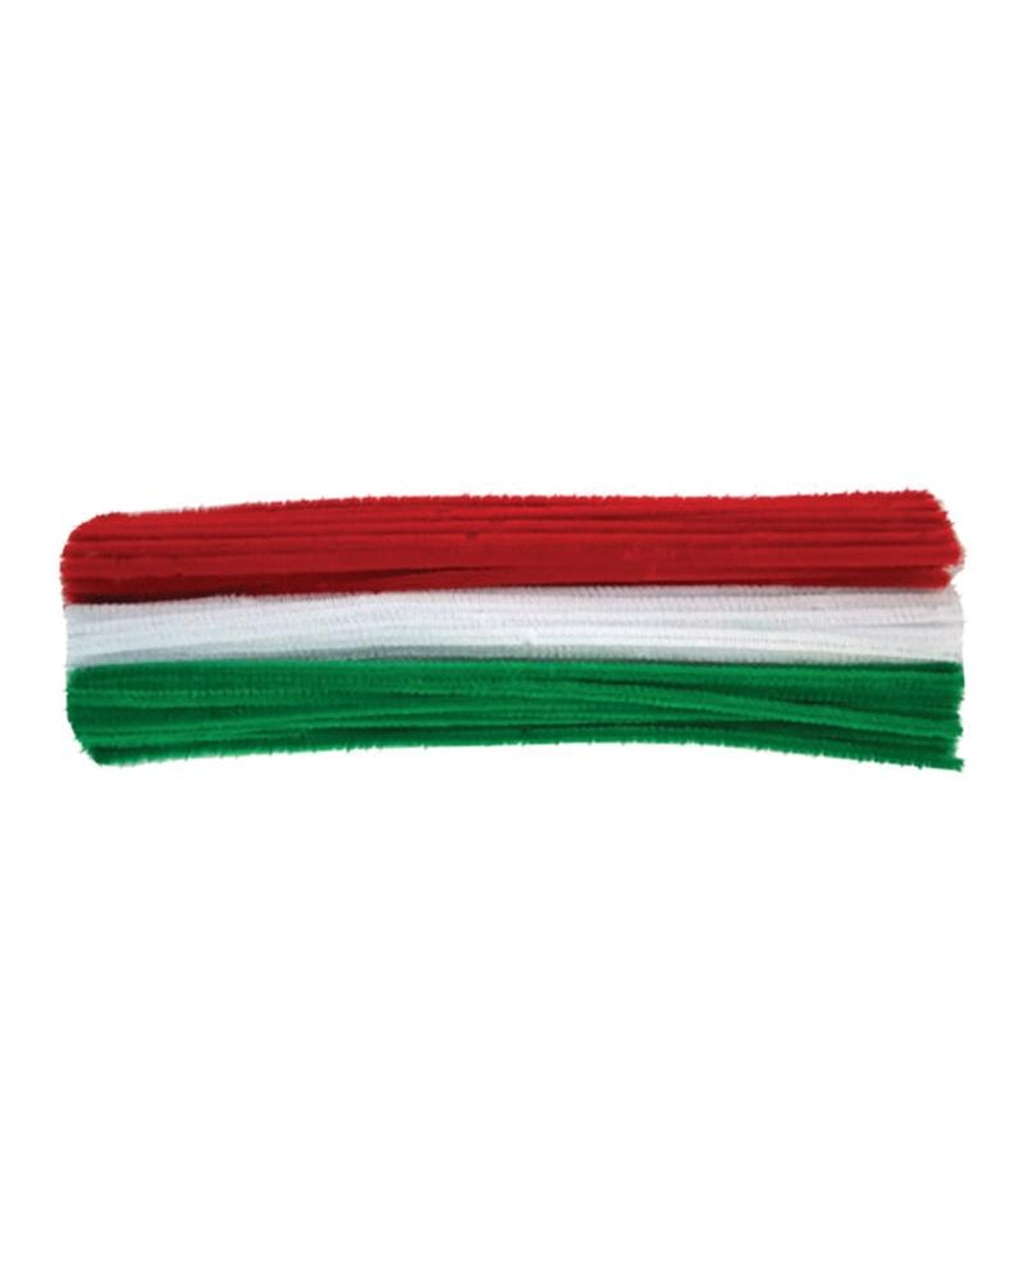 Christmas Chenille Pipe Cleaners 6mm x 300mm